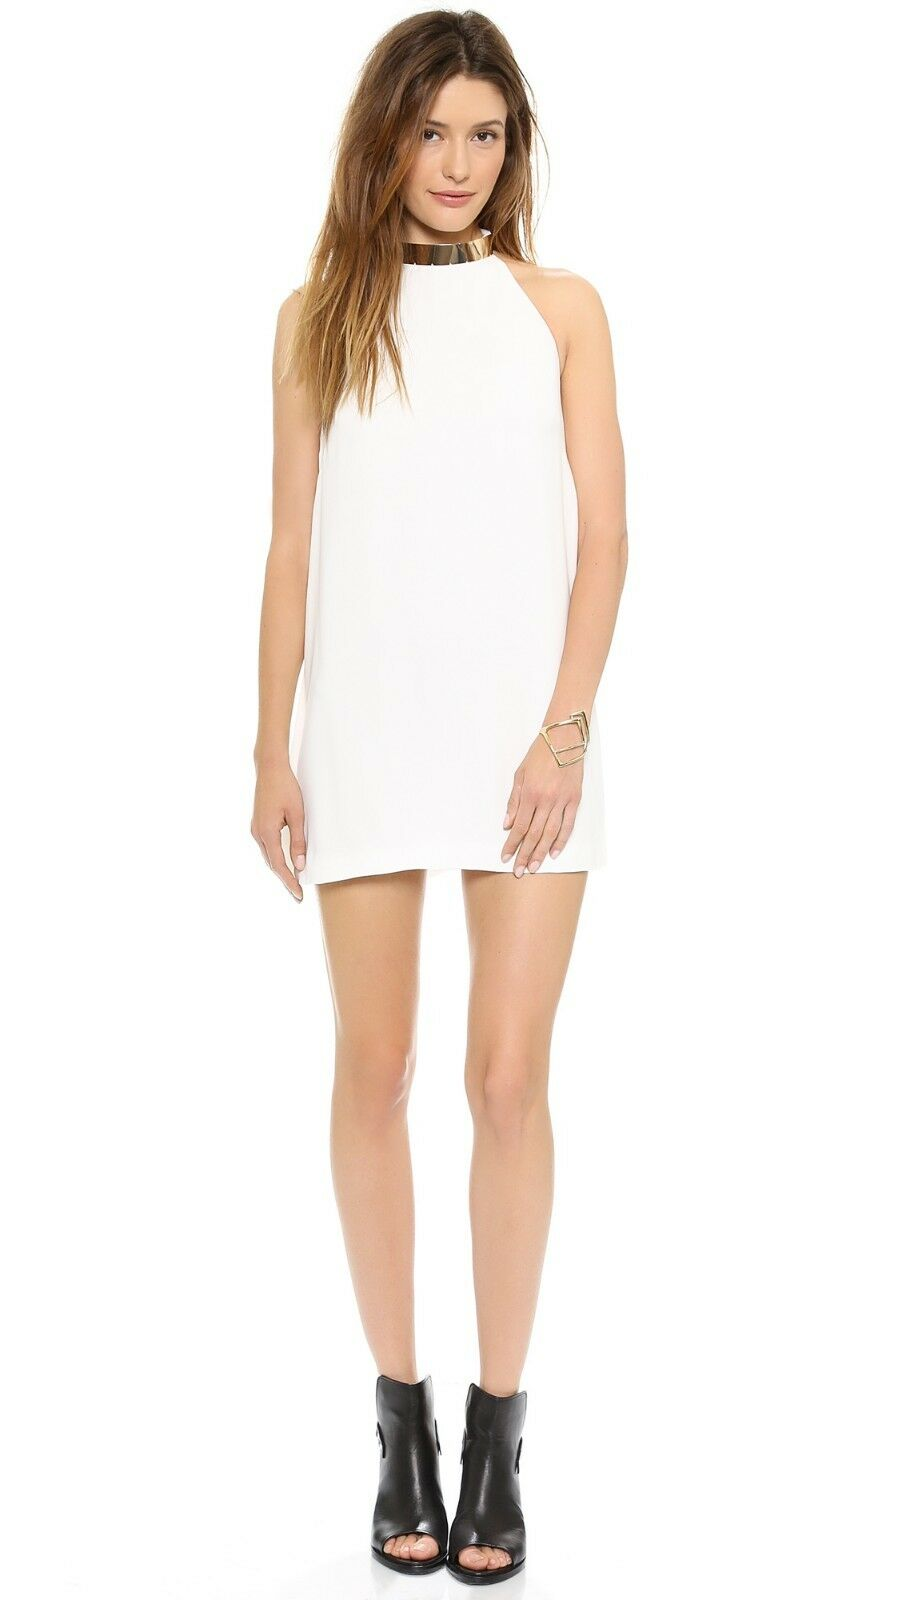 NEW Keepsake Reckless Mini Dress in Ivory Weiß swing halter crepe - Small